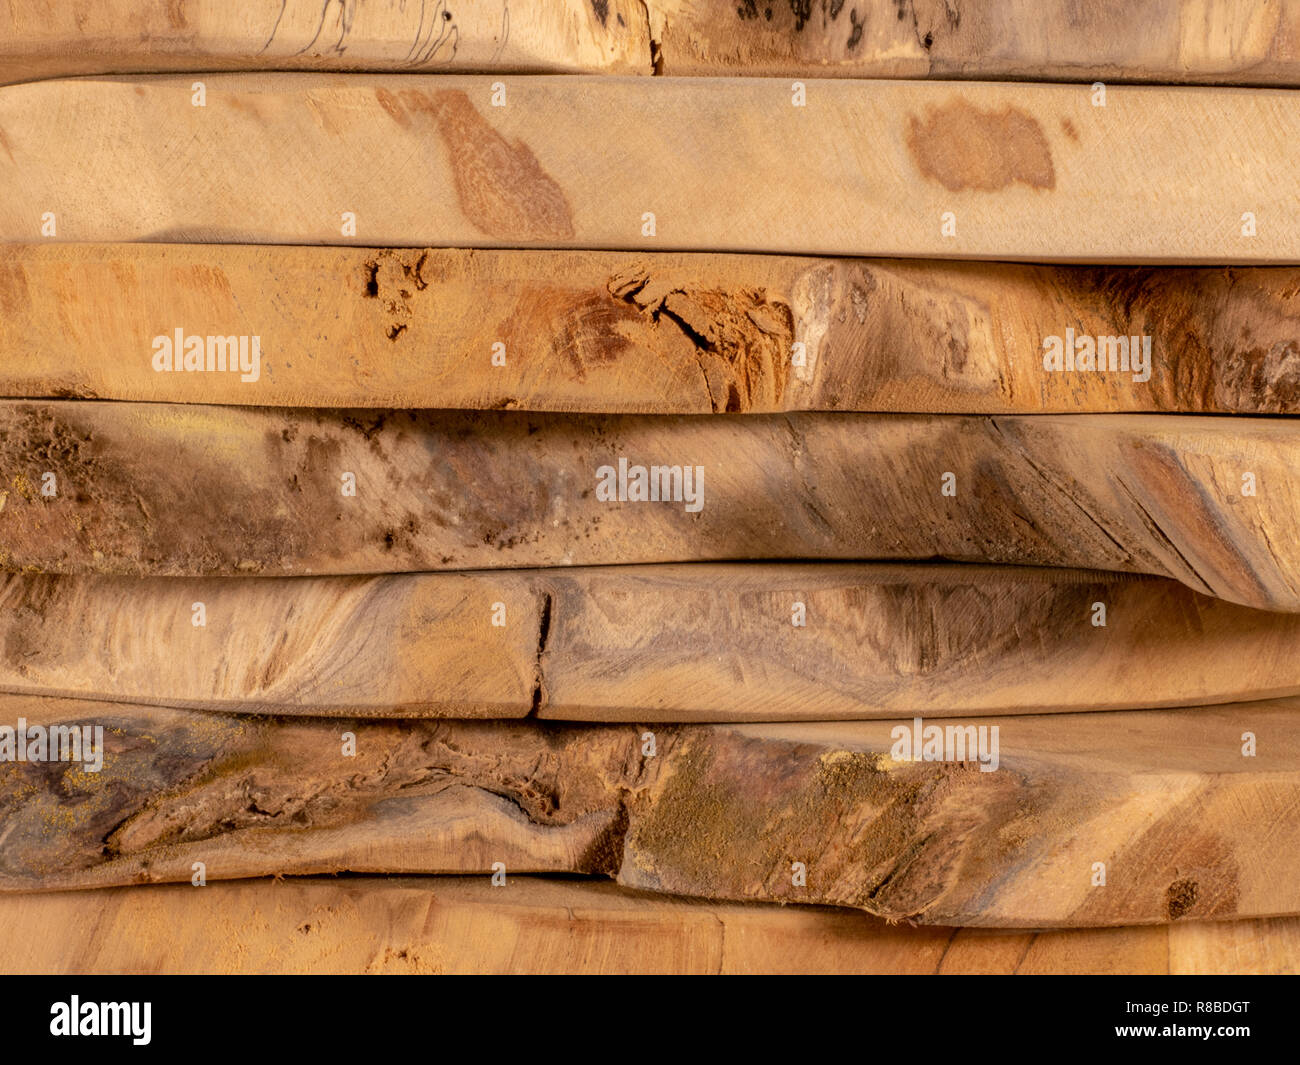 Stack of lying teak planks with a natural look and suitable for decorative applications or for further processing. - Stock Image